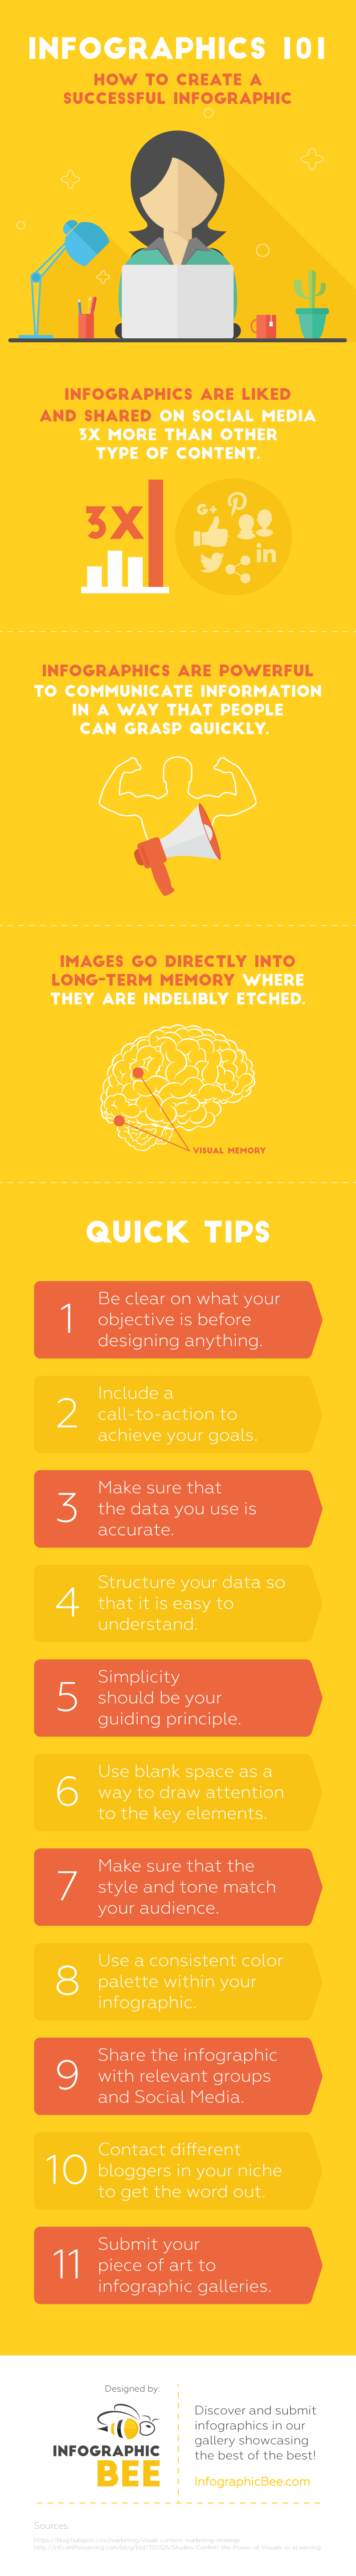 How to Create the Perfect Infographic Infographic